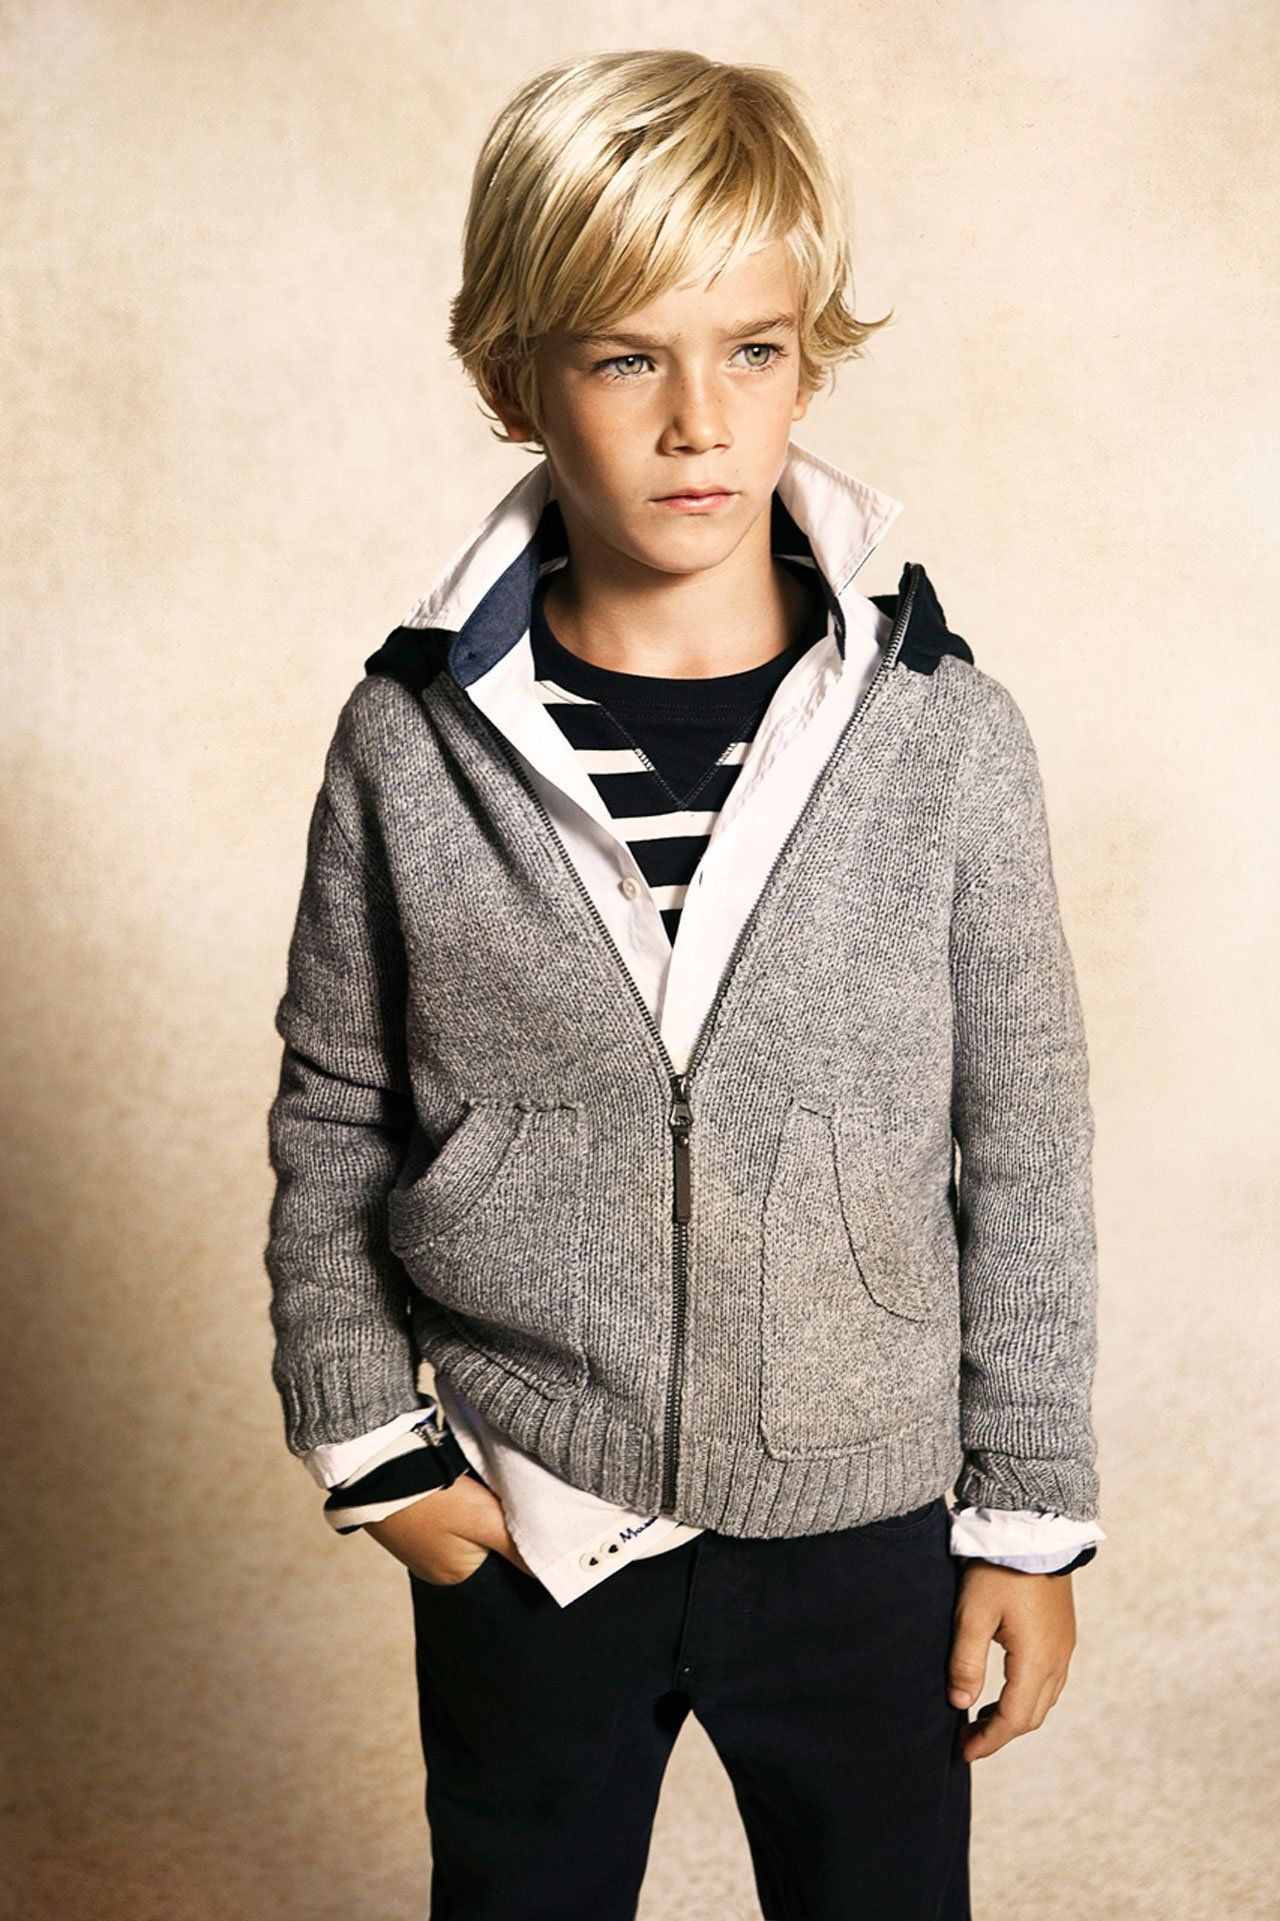 Boy long hairstyles love the outfit too  beautiful kids  pinterest  boy hair